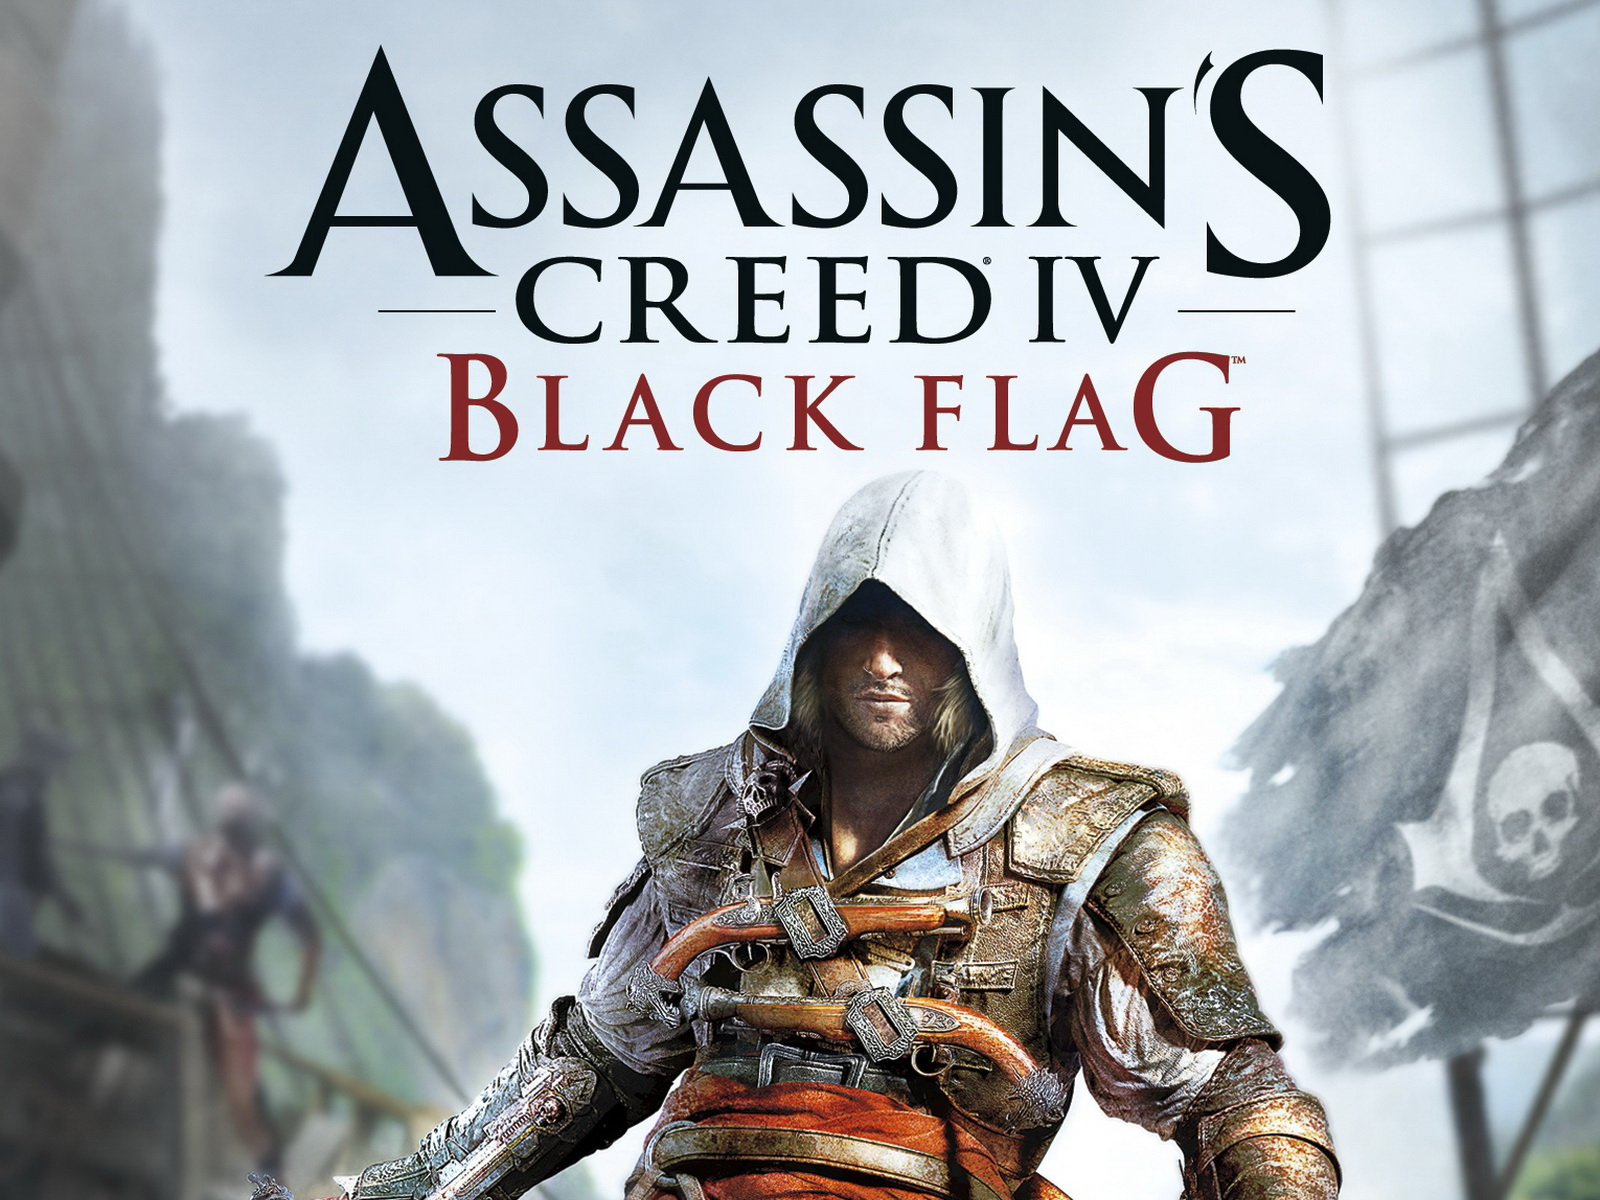 Assassin S Creed Iv Black Flag Wallpaper 1600x1200 Imagebank Biz